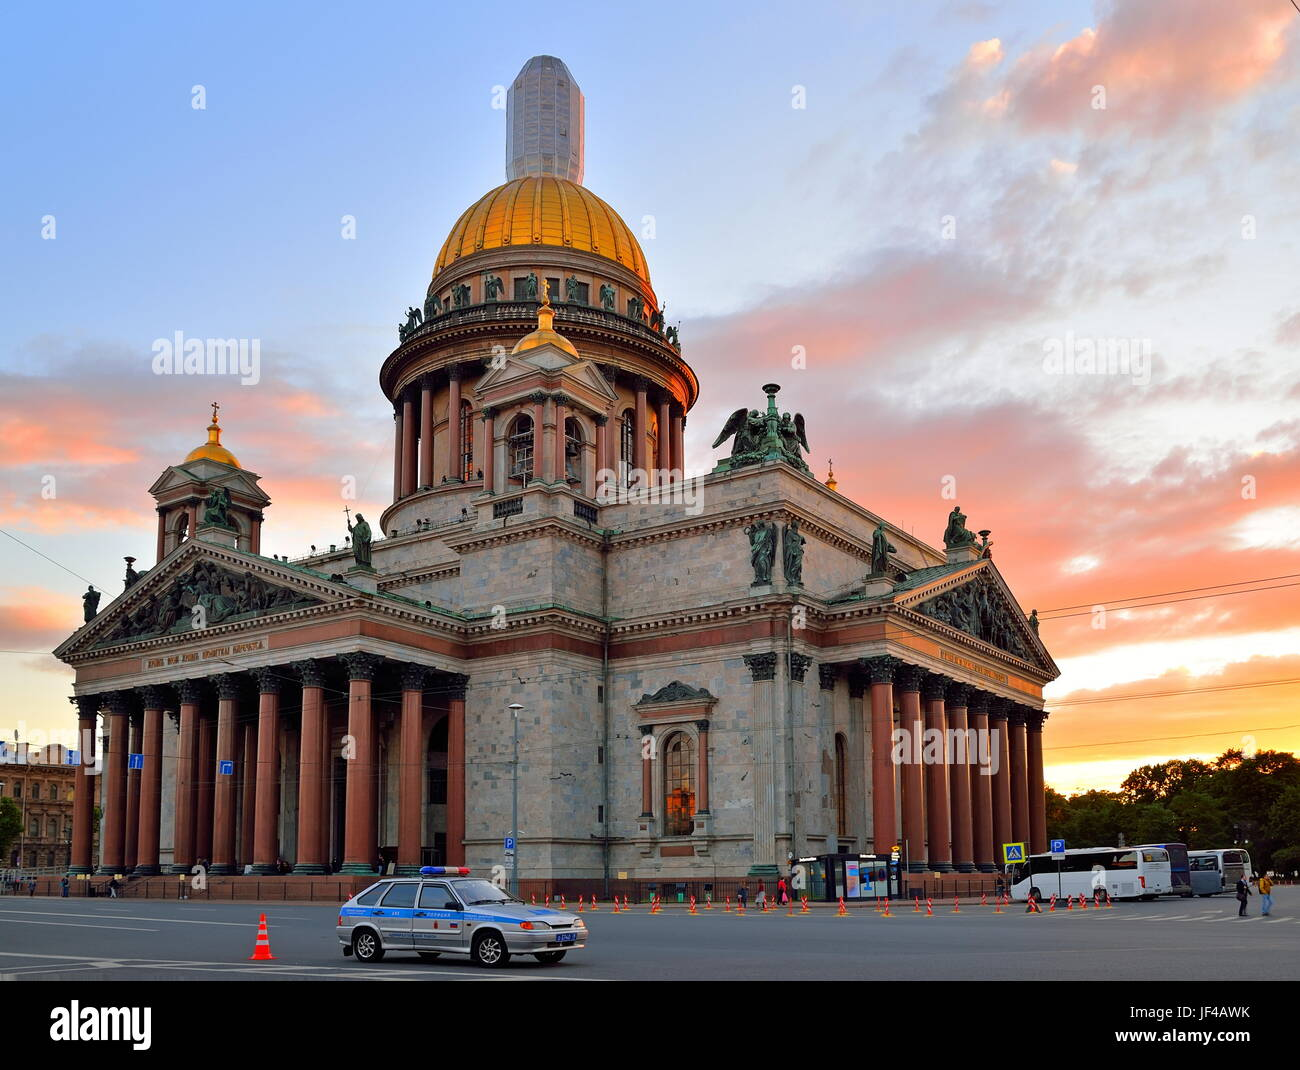 St PETERSBURG, RUSSIA - 19 JUNE 2017: St. Isaac's Cathedral at sunset under the clouds on the background of a police Stock Photo